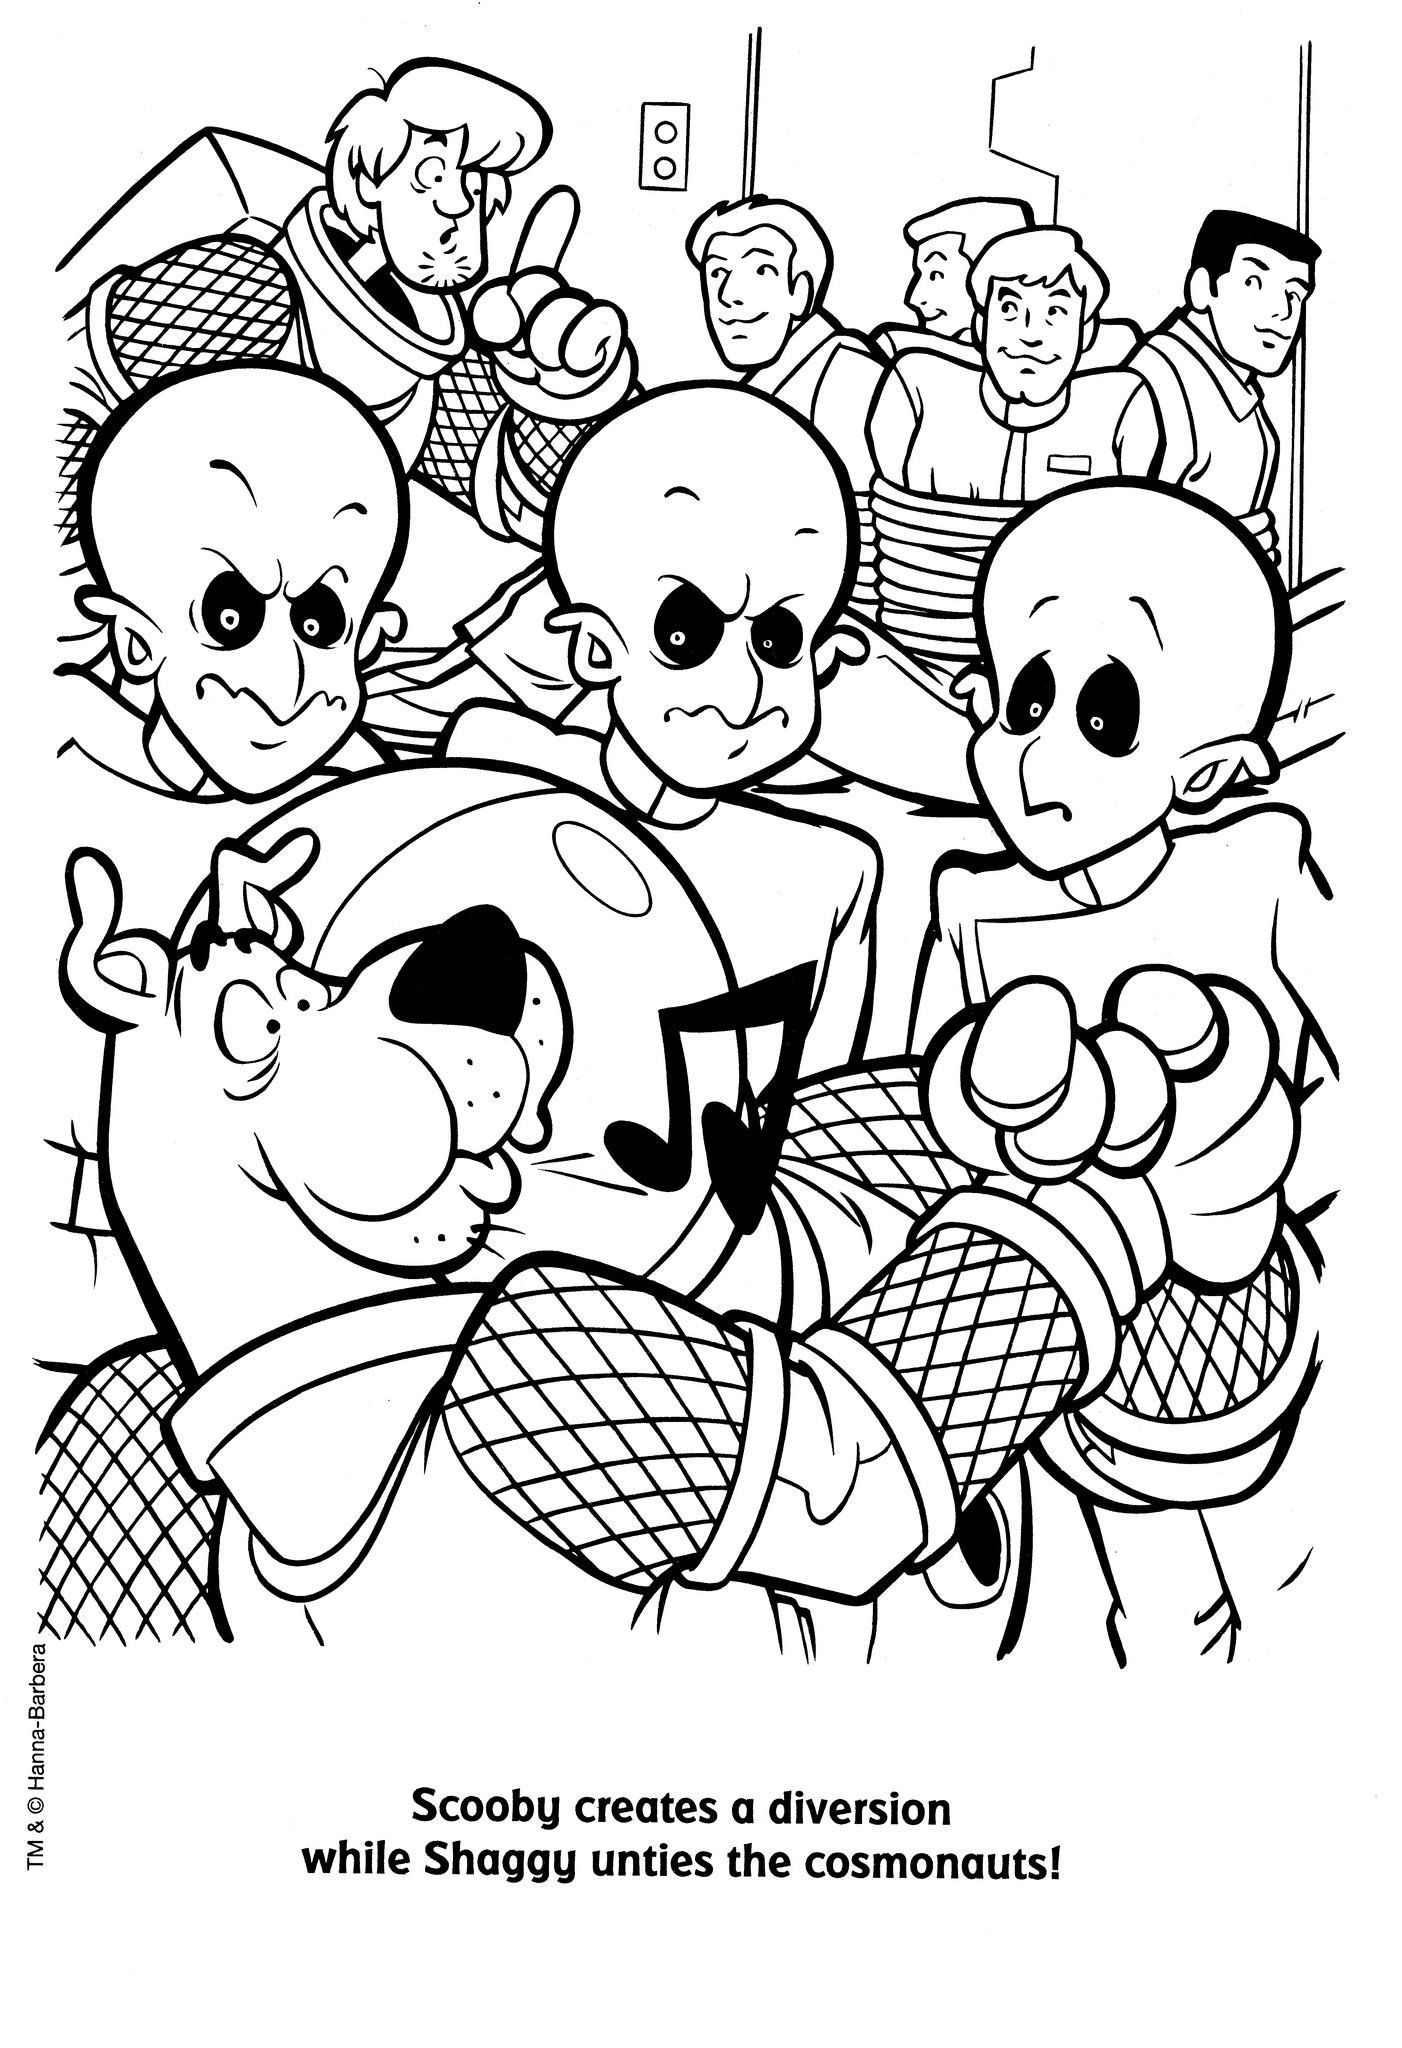 scooby doo characters coloring pages scooby doo characters coloring pages doo characters pages scooby coloring